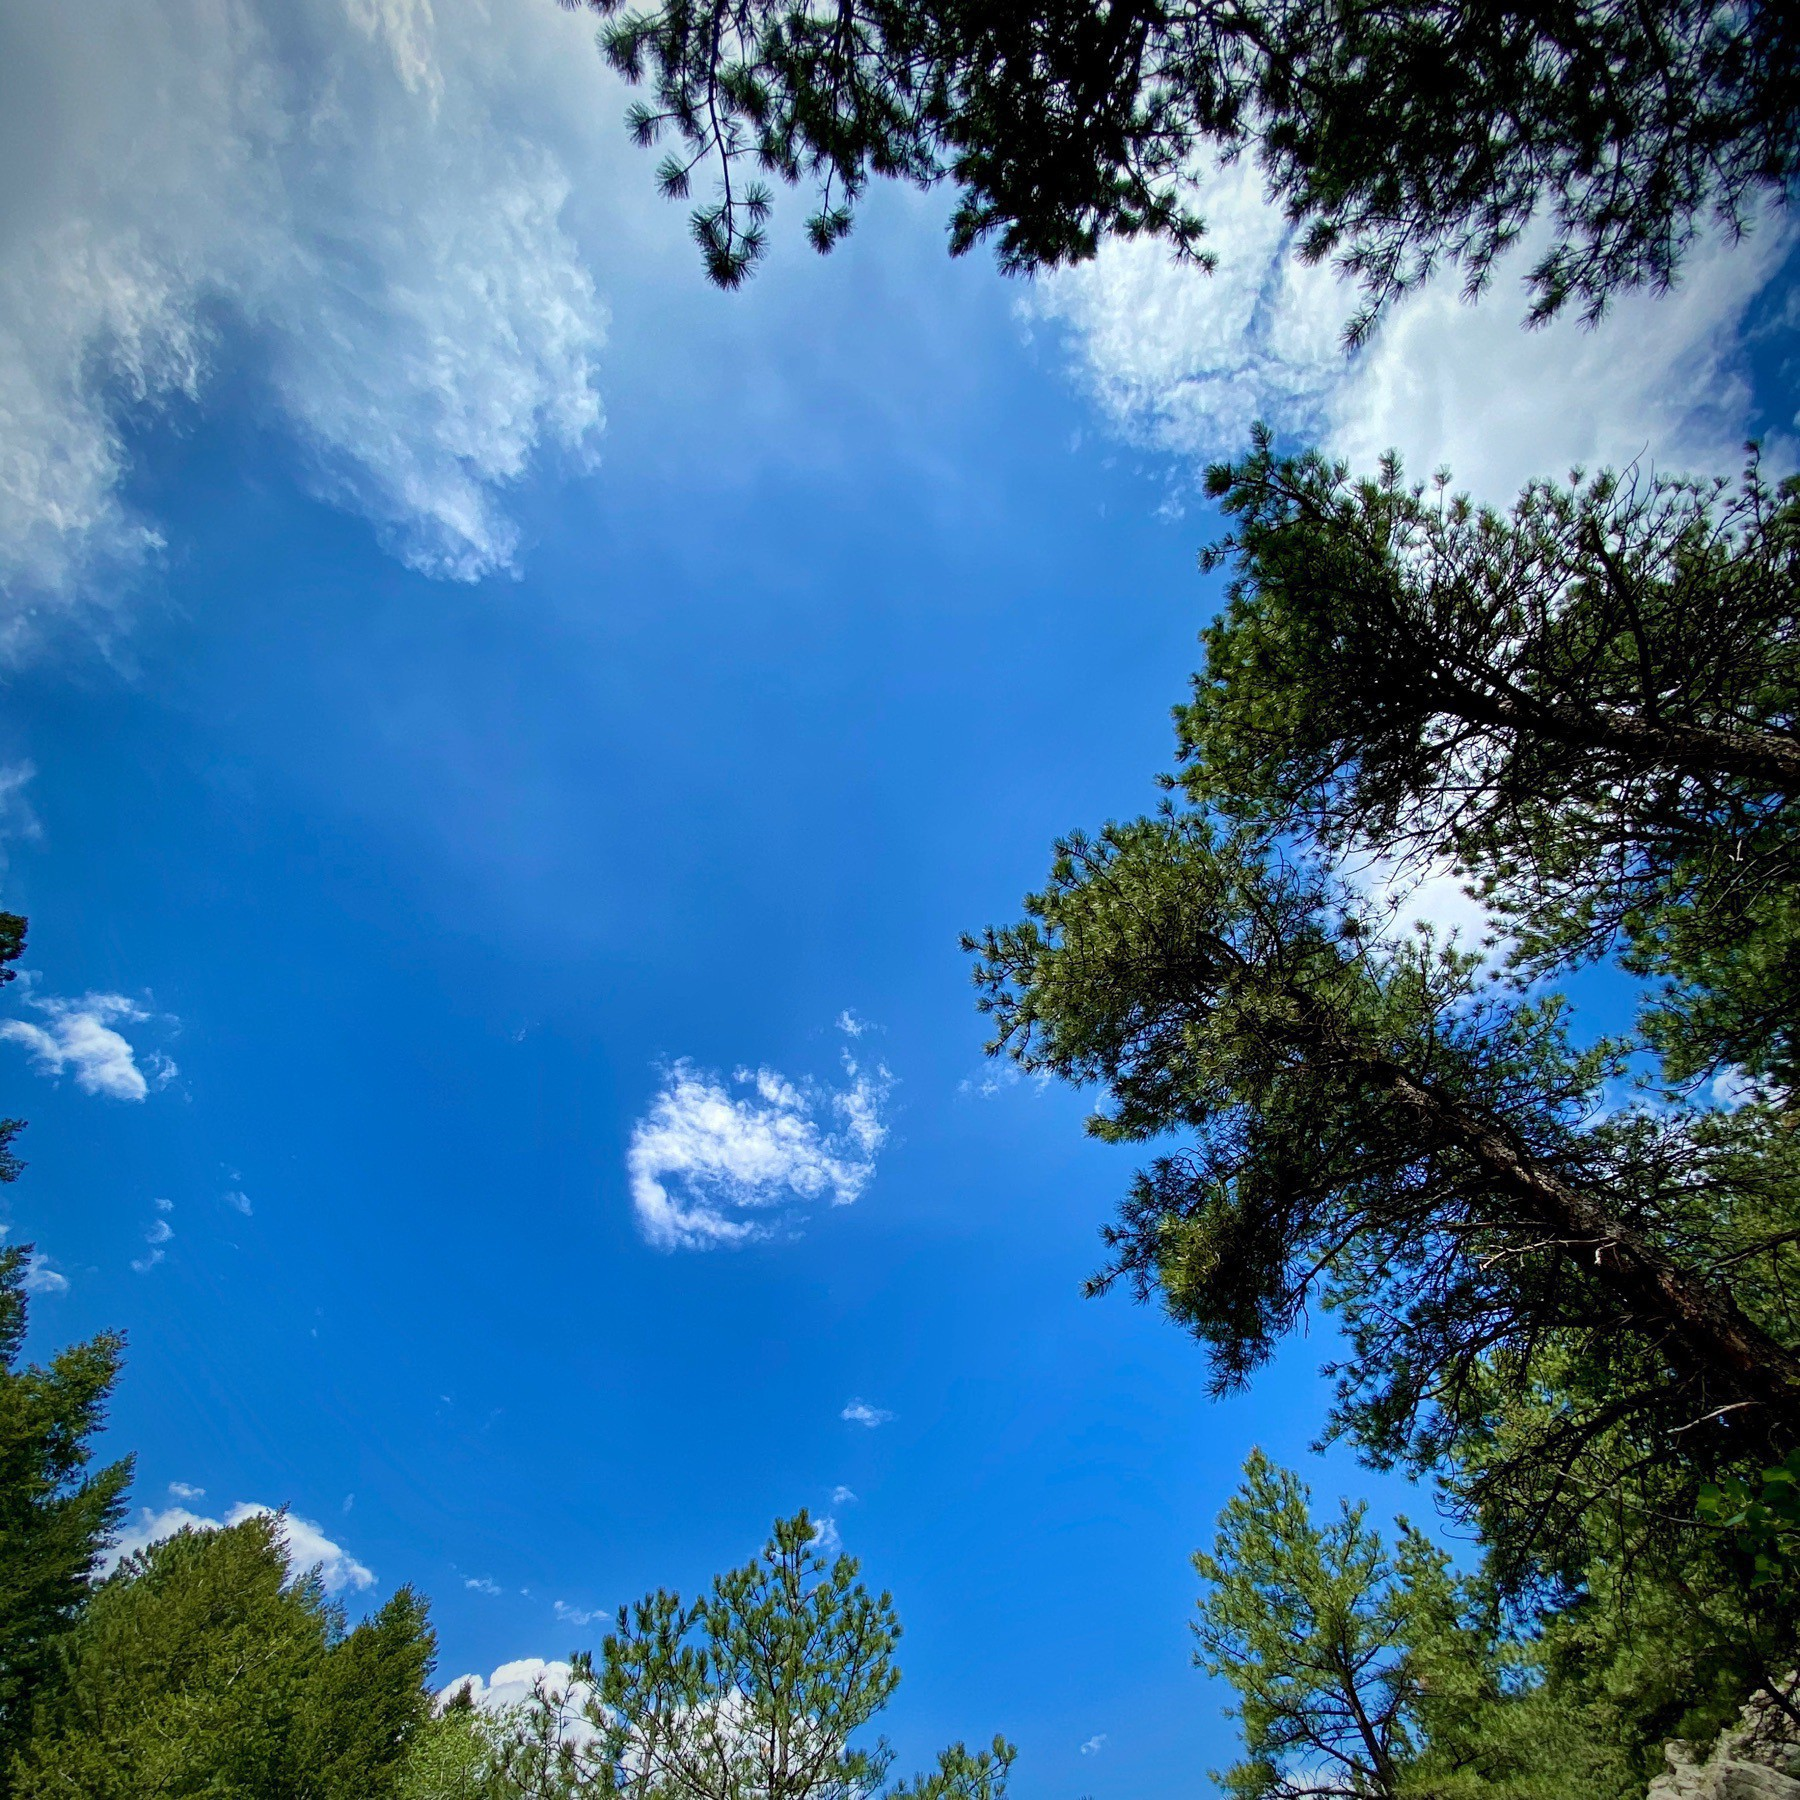 Looking up at a blue sky, framed by trees.